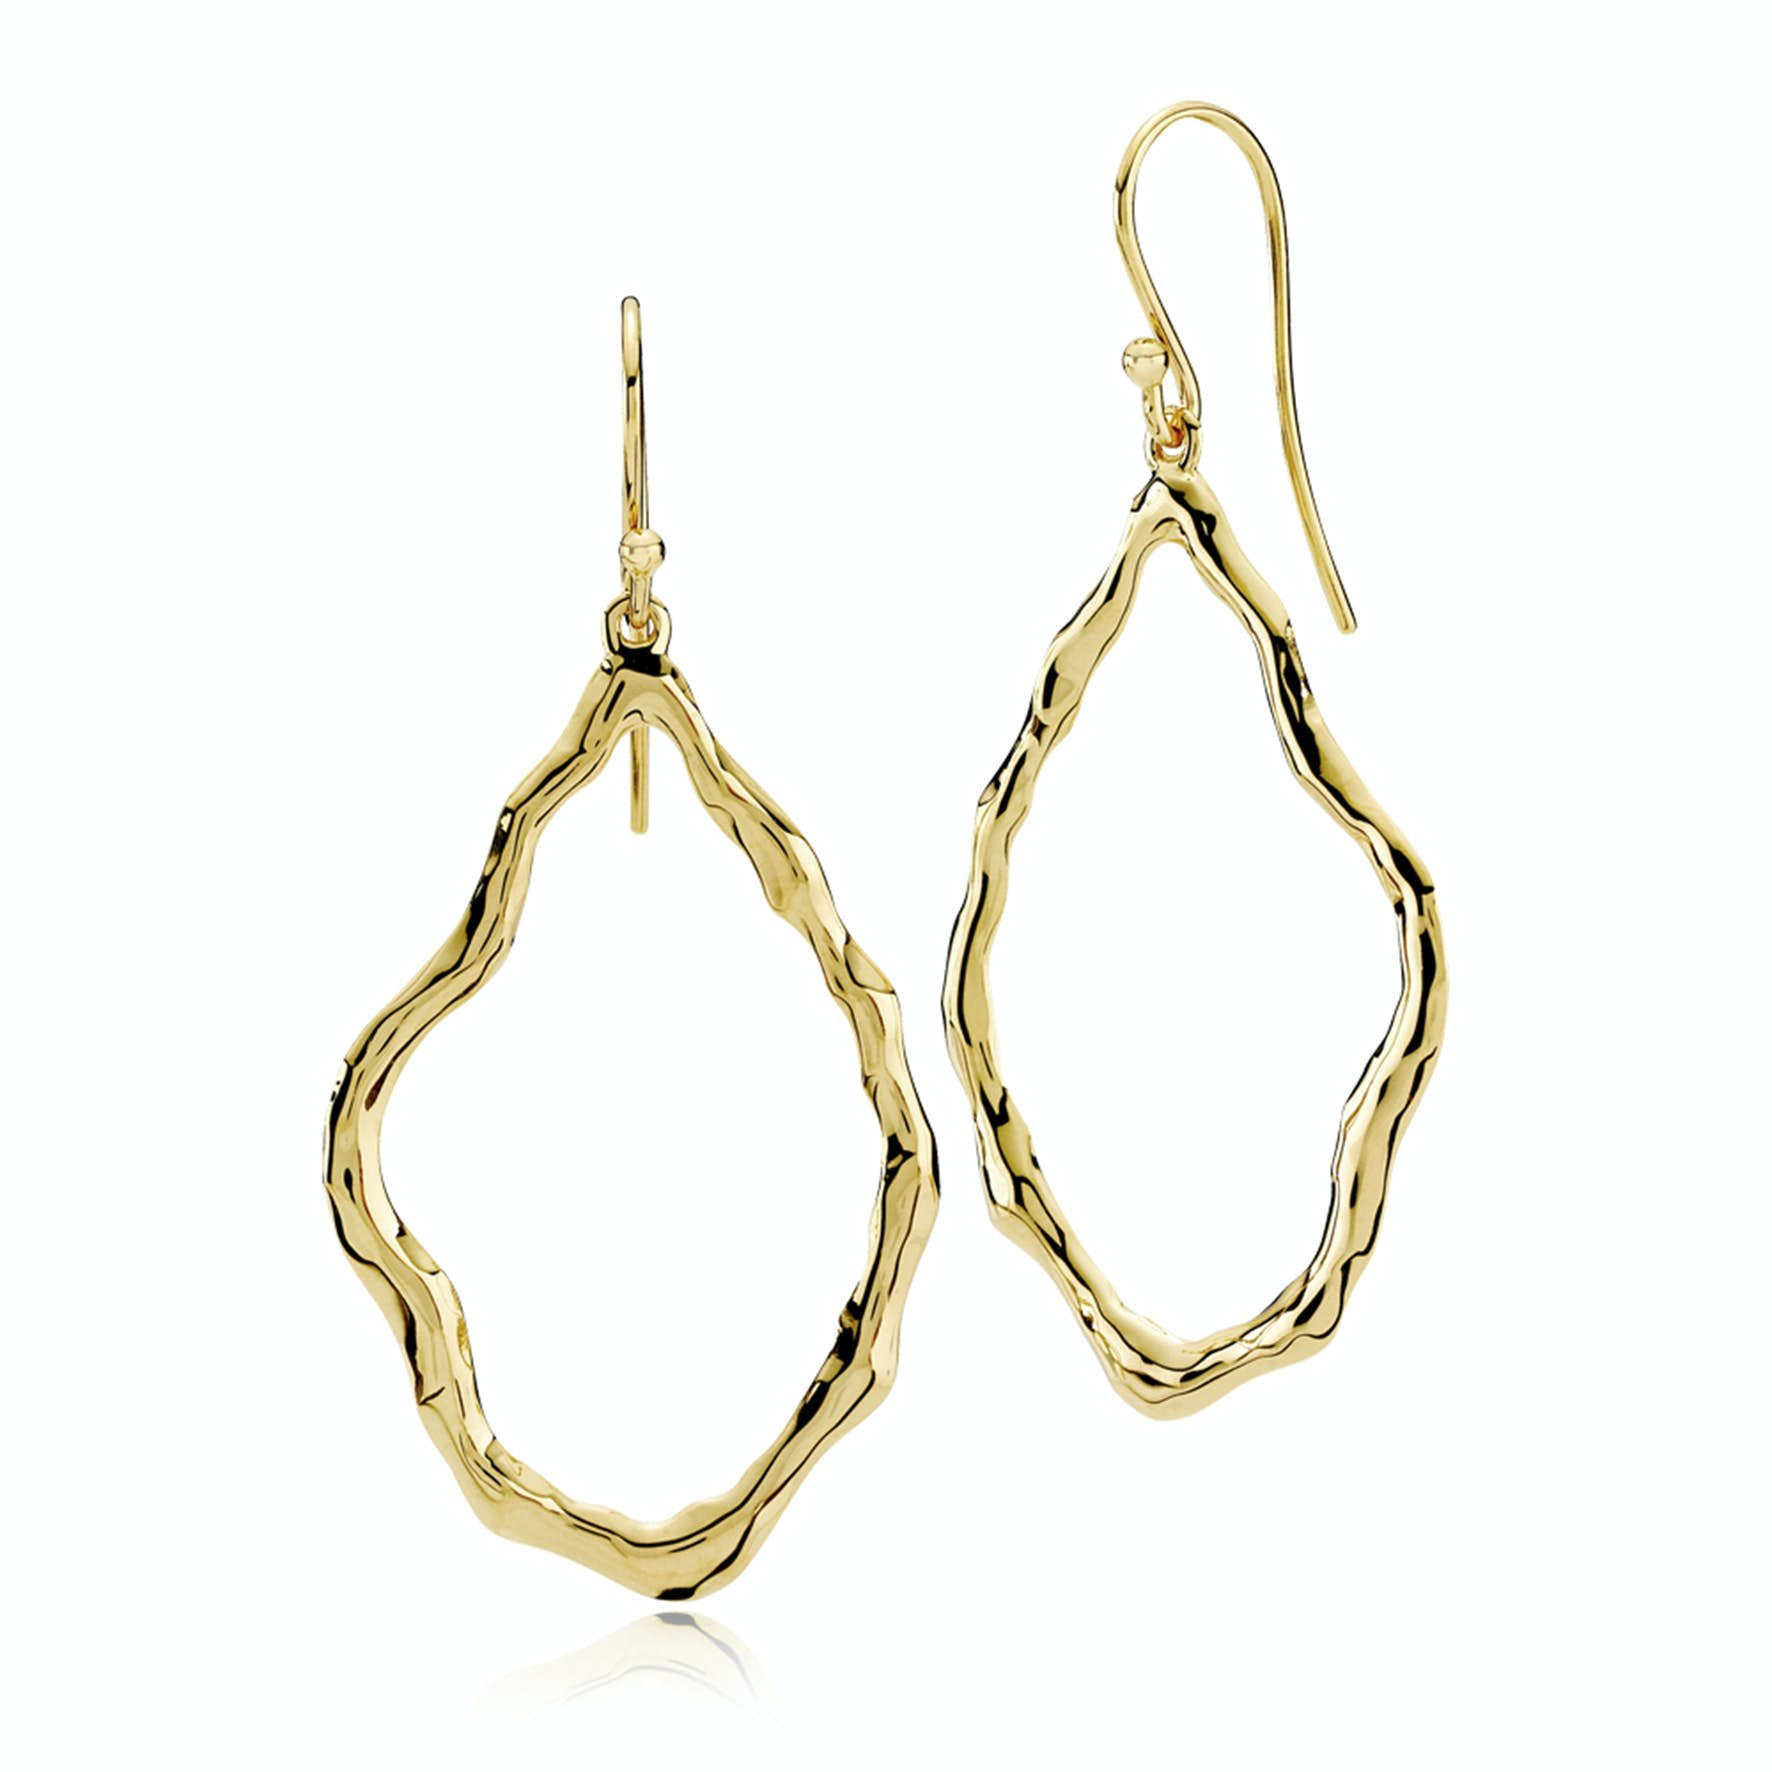 Emma Earrings from Izabel Camille in Goldplated-Silver Sterling 925